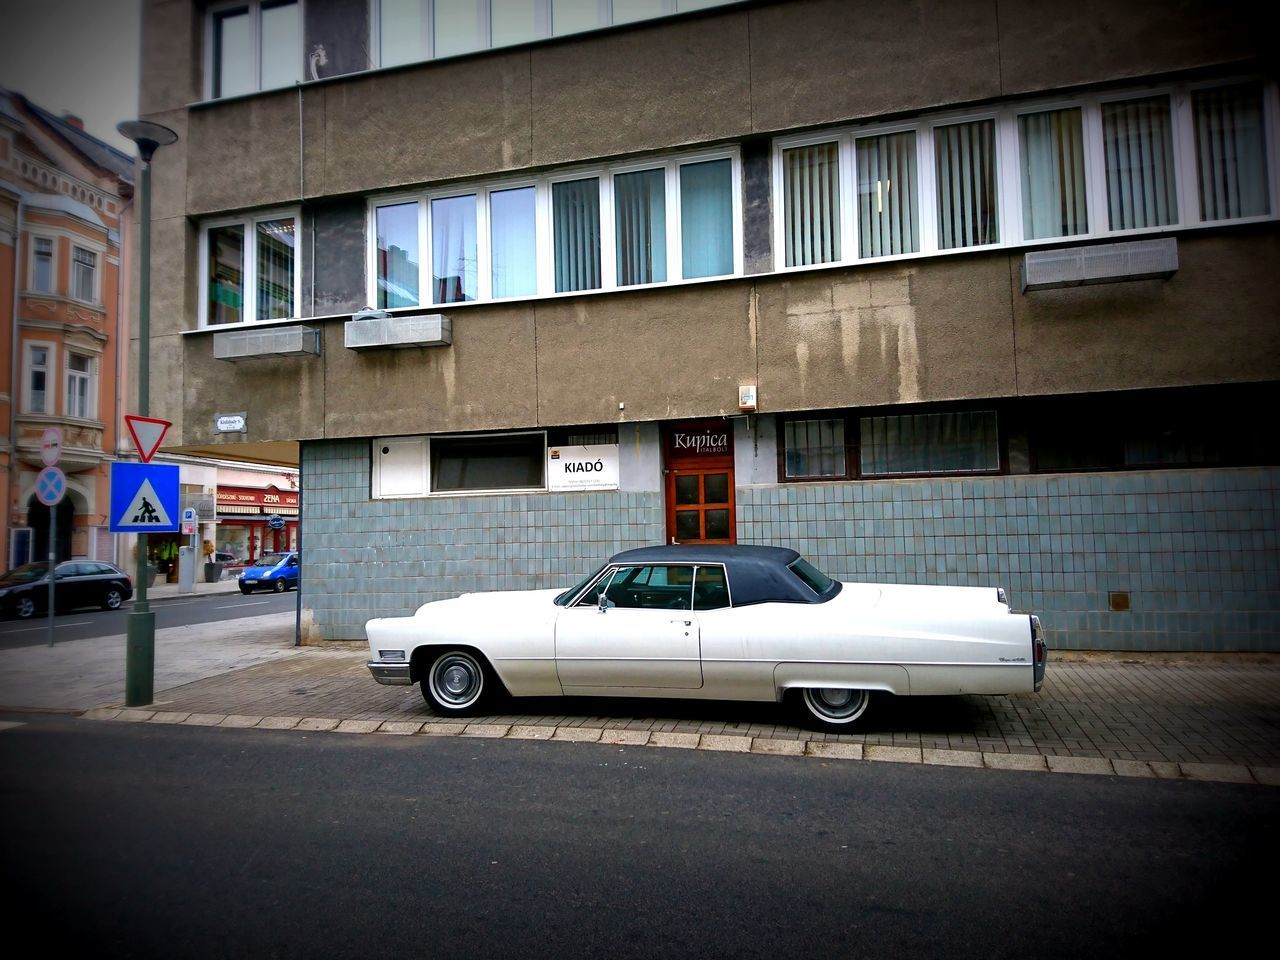 CAR PARKED ON STREET BY BUILDING